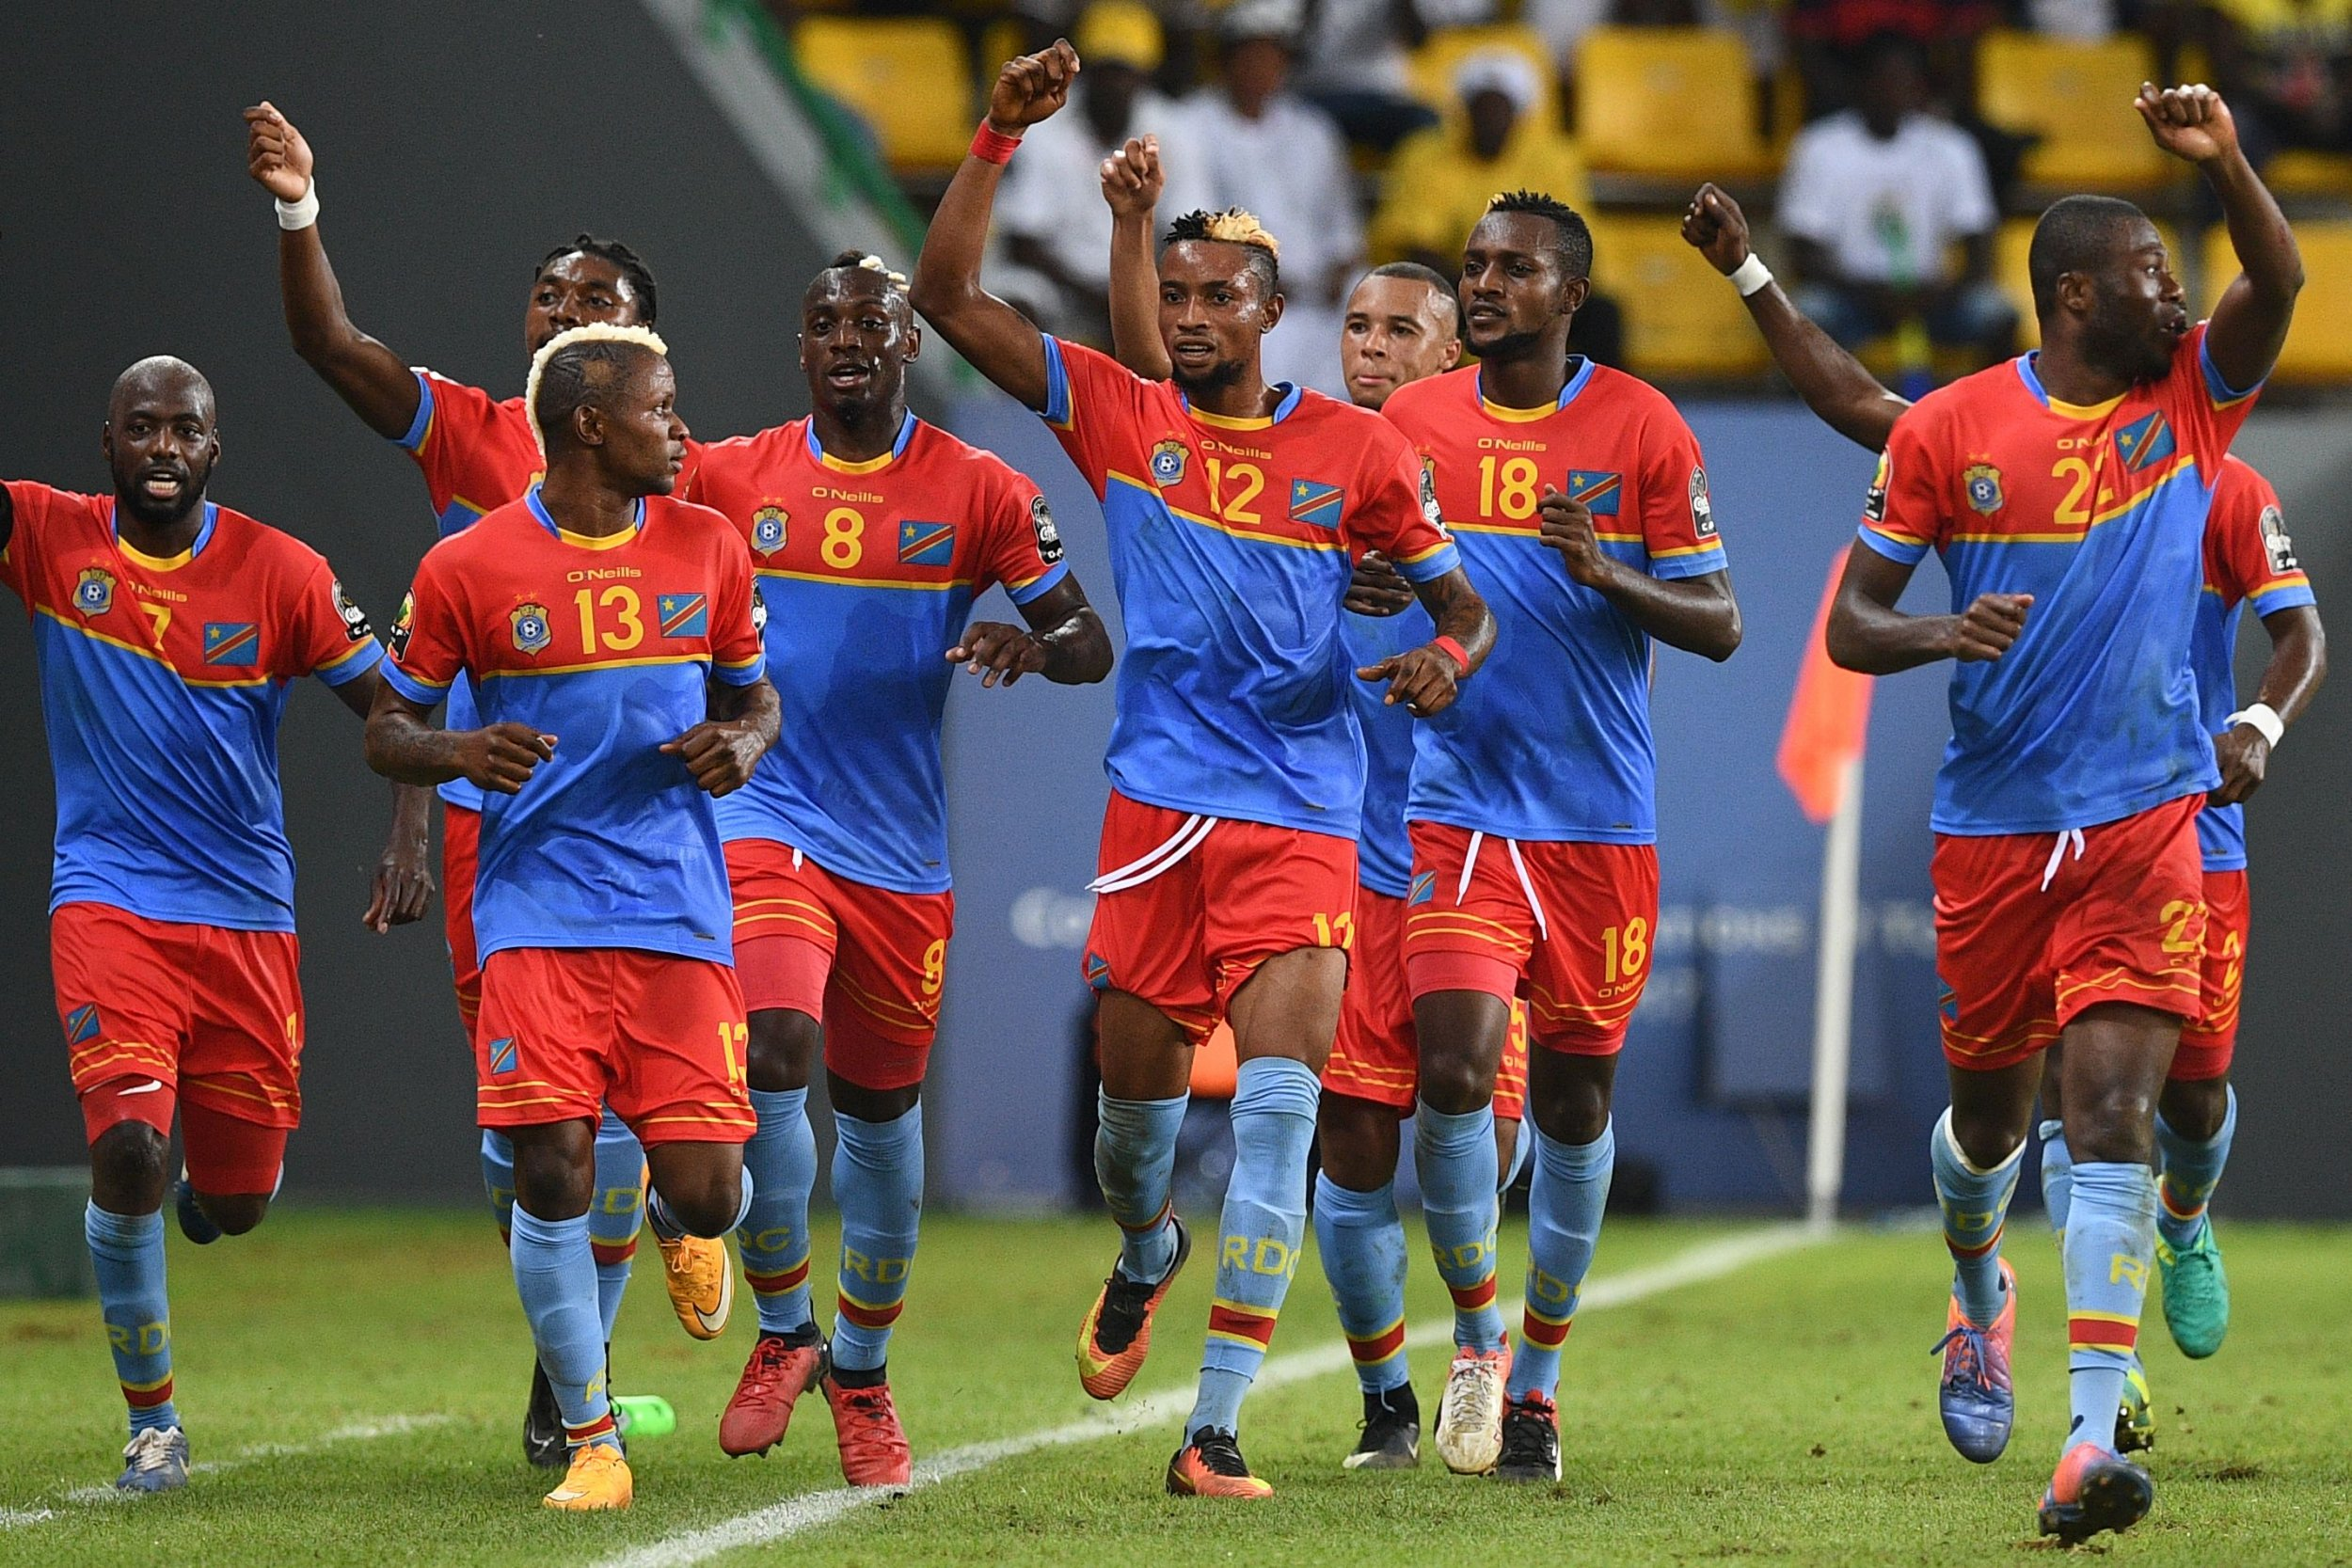 Congo football celebration